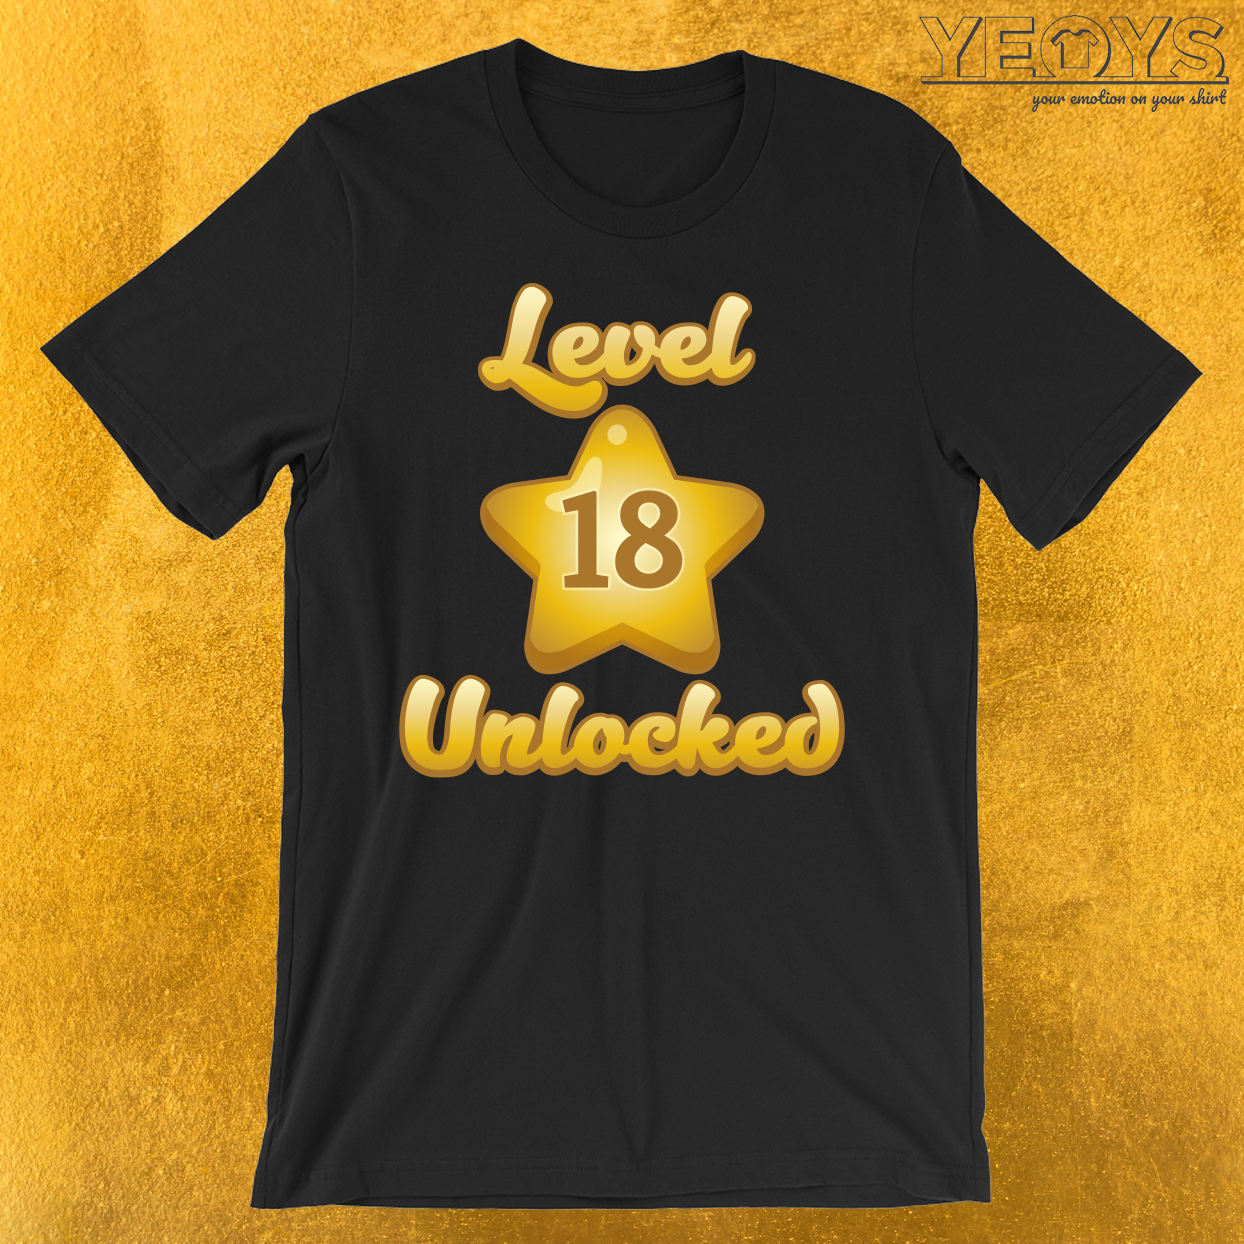 Level 18 Unlocked T-Shirt